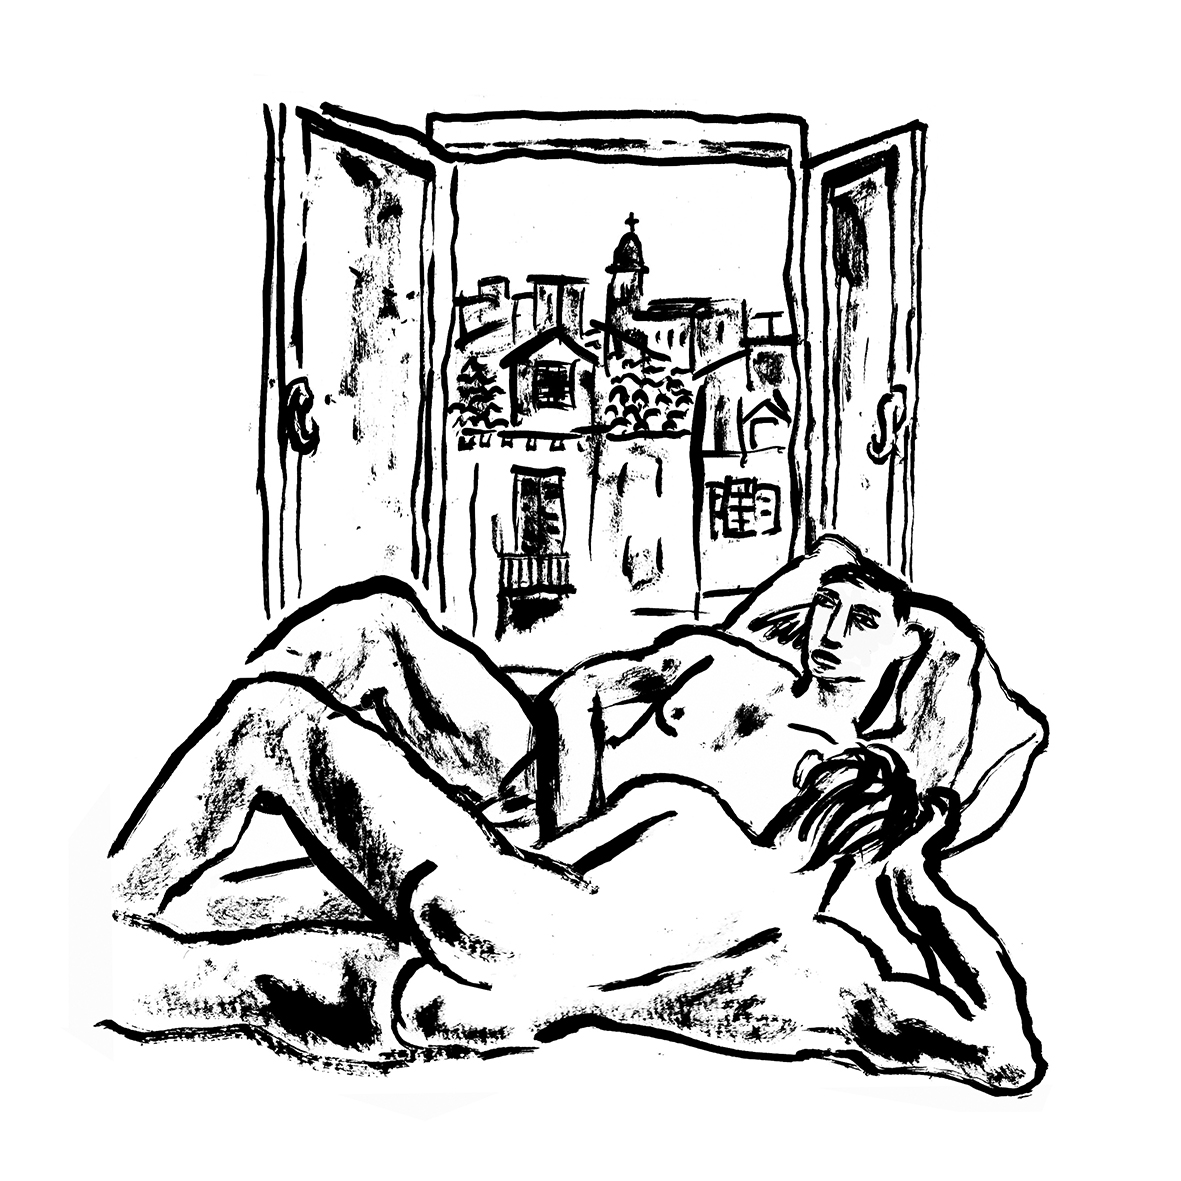 Illustration by #robertlittleford for #danielatsea by @PhilipDundas - A beautiful debut novel published by @BacklashPress - now available in hardback and kindle. Contact me for review copies @gaytimesmag @AttitudeMag #gaynovel #gaybook #gaylove https://t.co/nZyMu7vaON